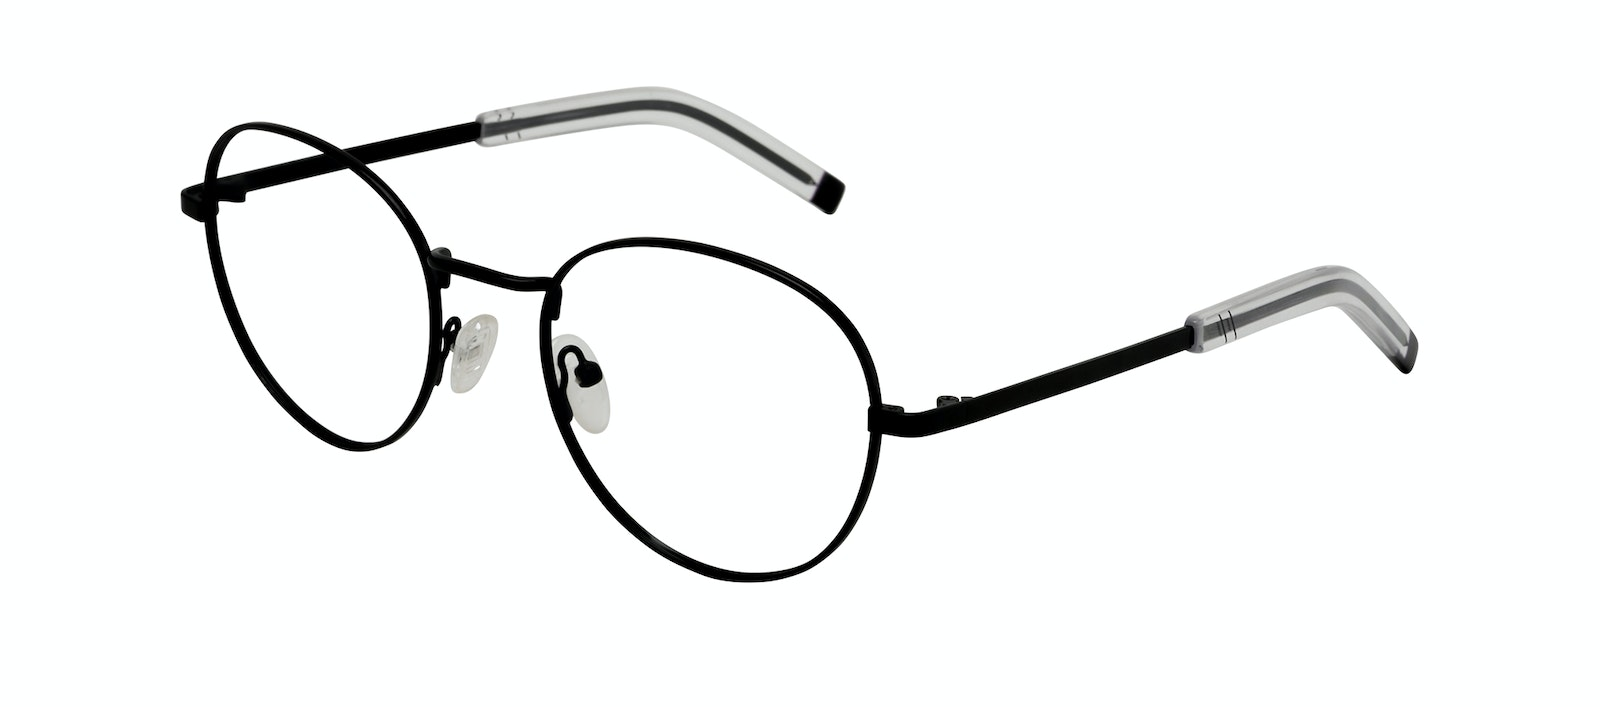 Affordable Fashion Glasses Round Eyeglasses Men Lean XL Black Tilt